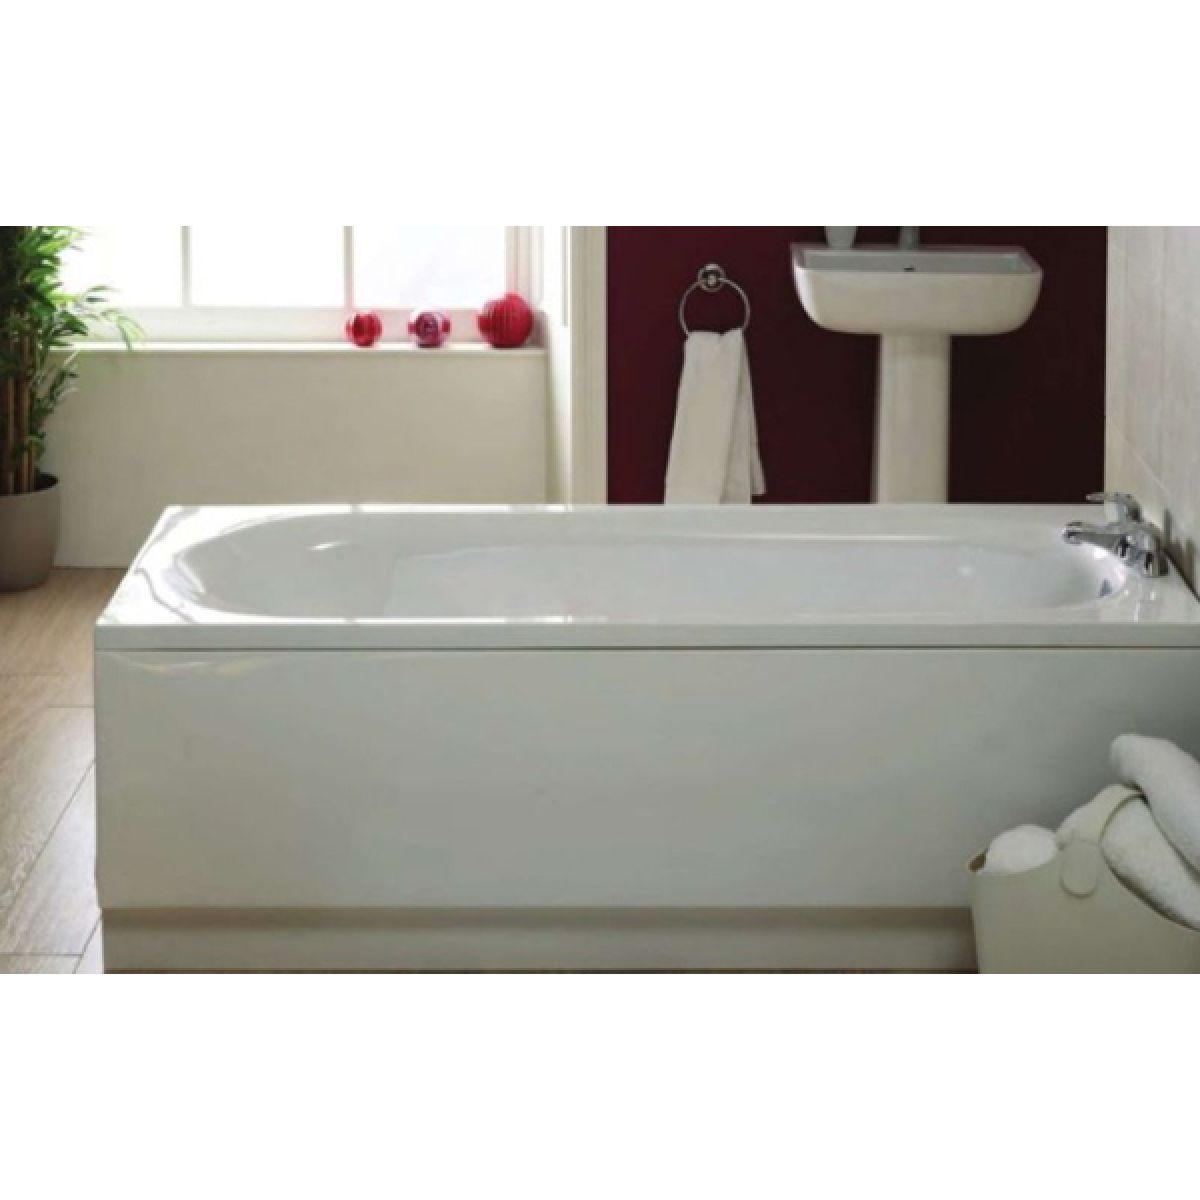 Frontline Caymen Single Ended Bath in Situation